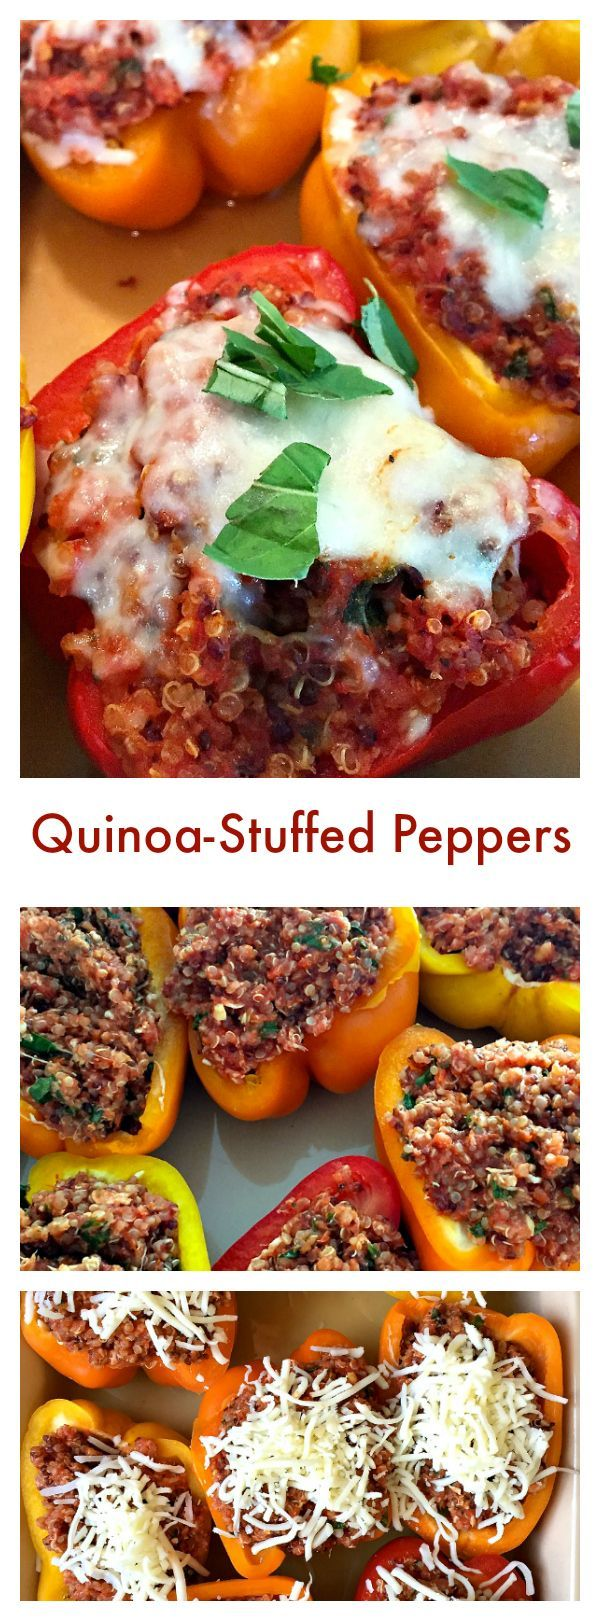 These Skinnytaste Quinoa-Stuffed Peppers are delicous served as a gluten-free main dish for Meatless Monday's, or as a side for any dinner party!